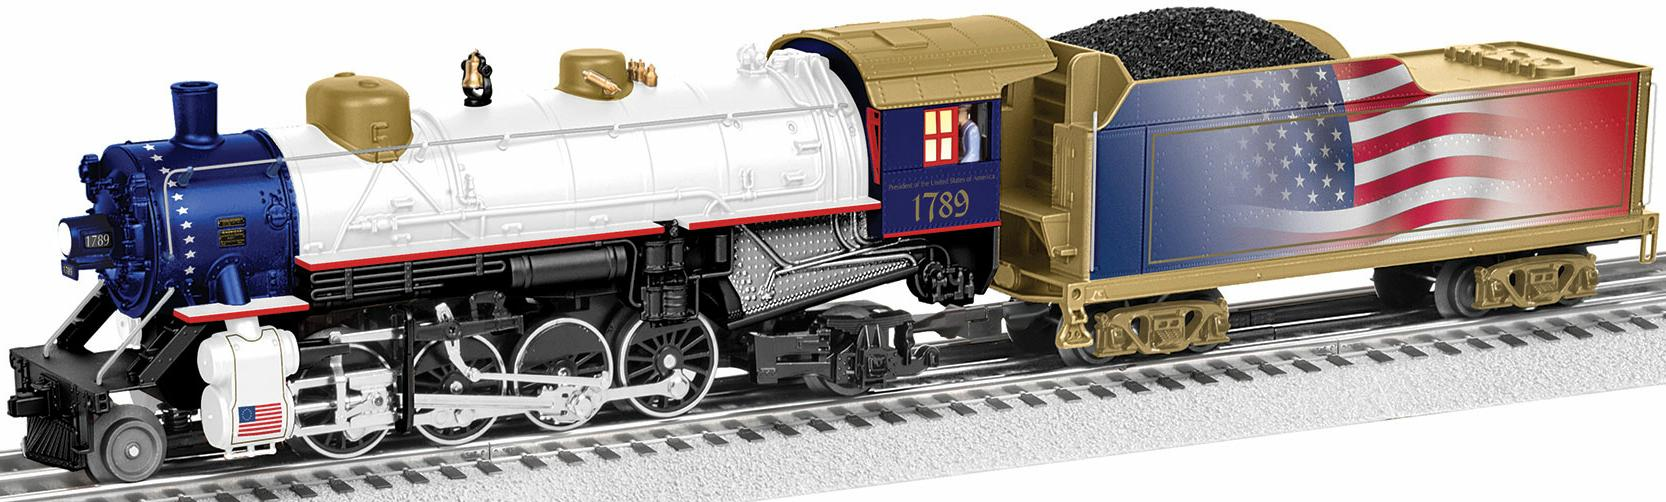 LionChief™ Plus Mikado Presidents Steam Locomotive image